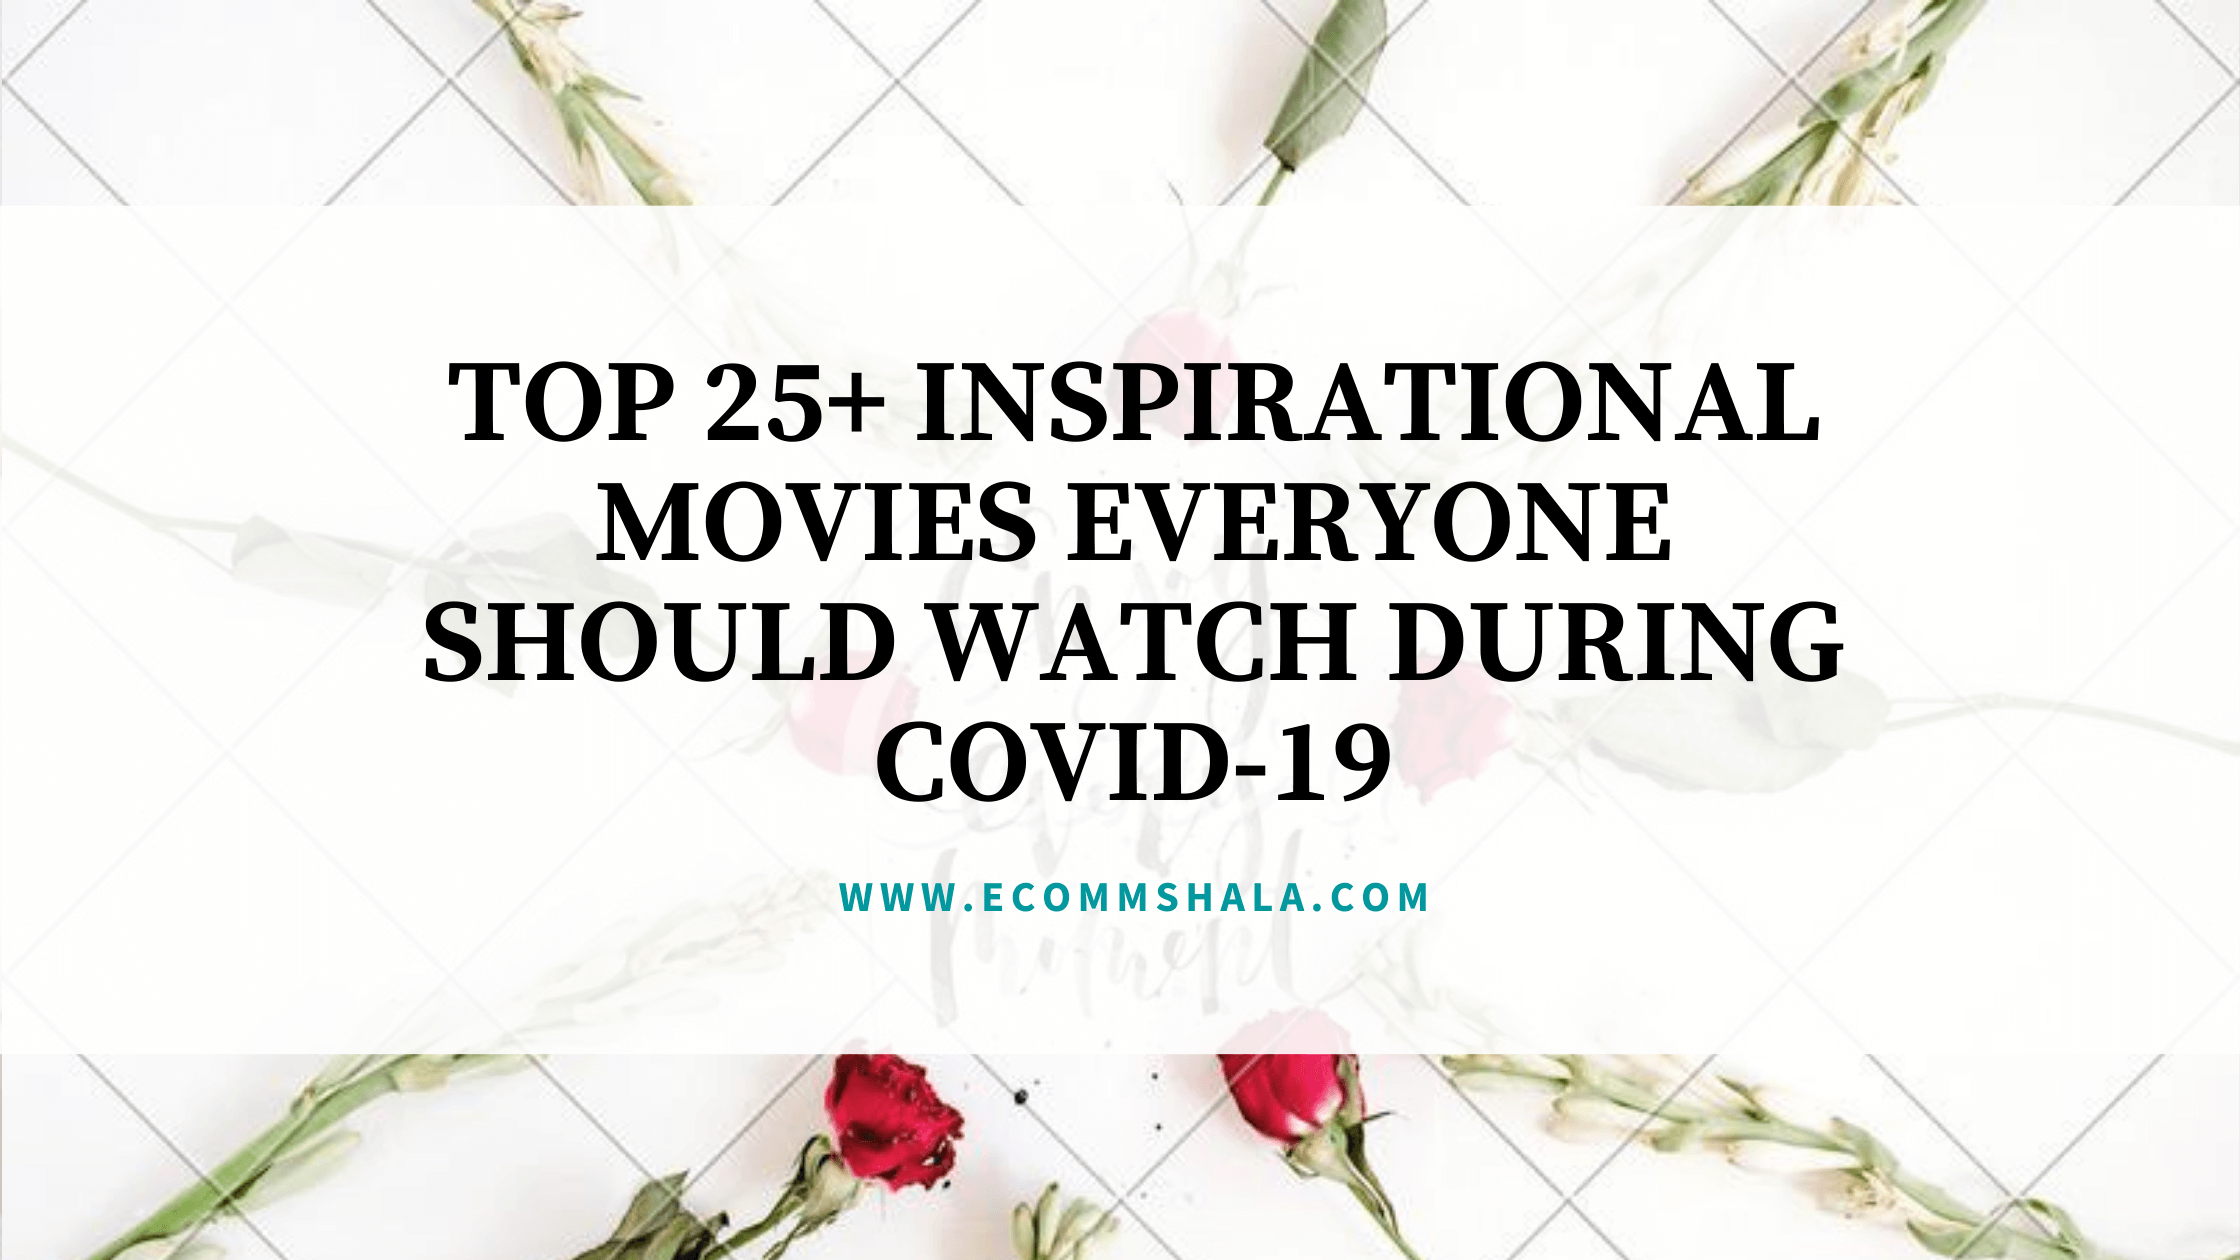 Top 25+ Inspirational movies everyone should watch during COVID-19